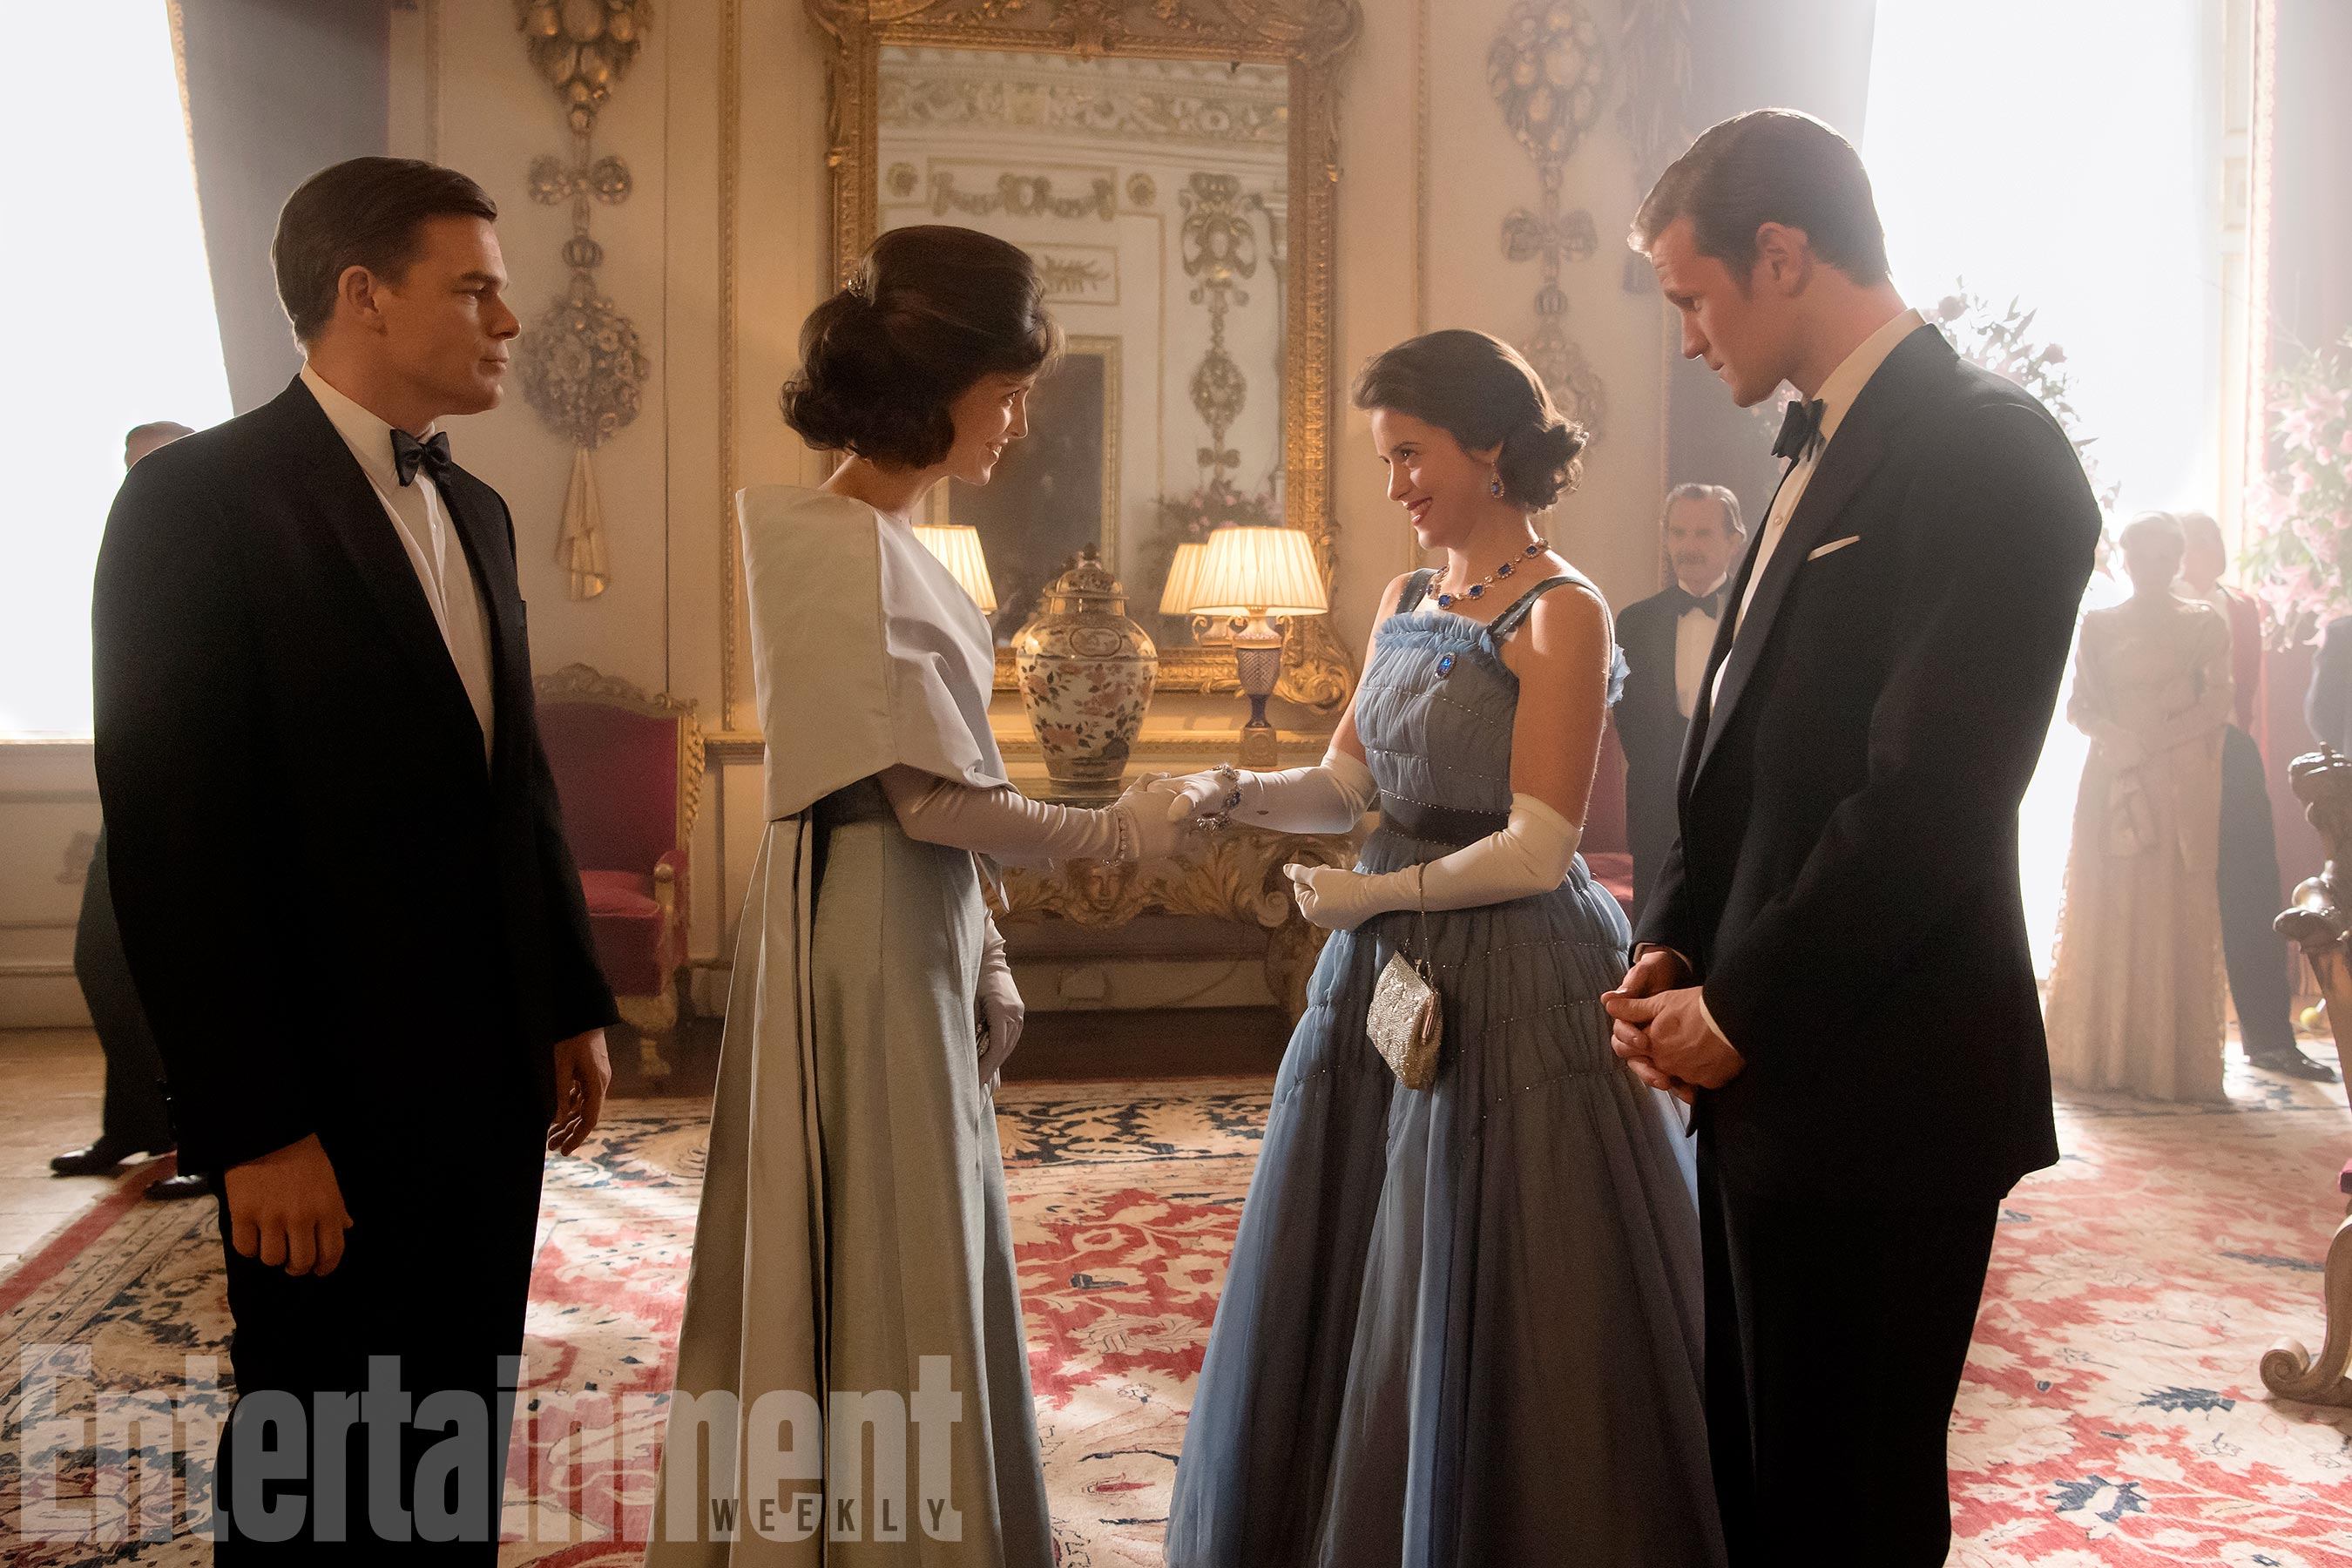 The Crown(L to R) Michael C. Hall, Jodi Balfour, Claire Foy, Matt Smith